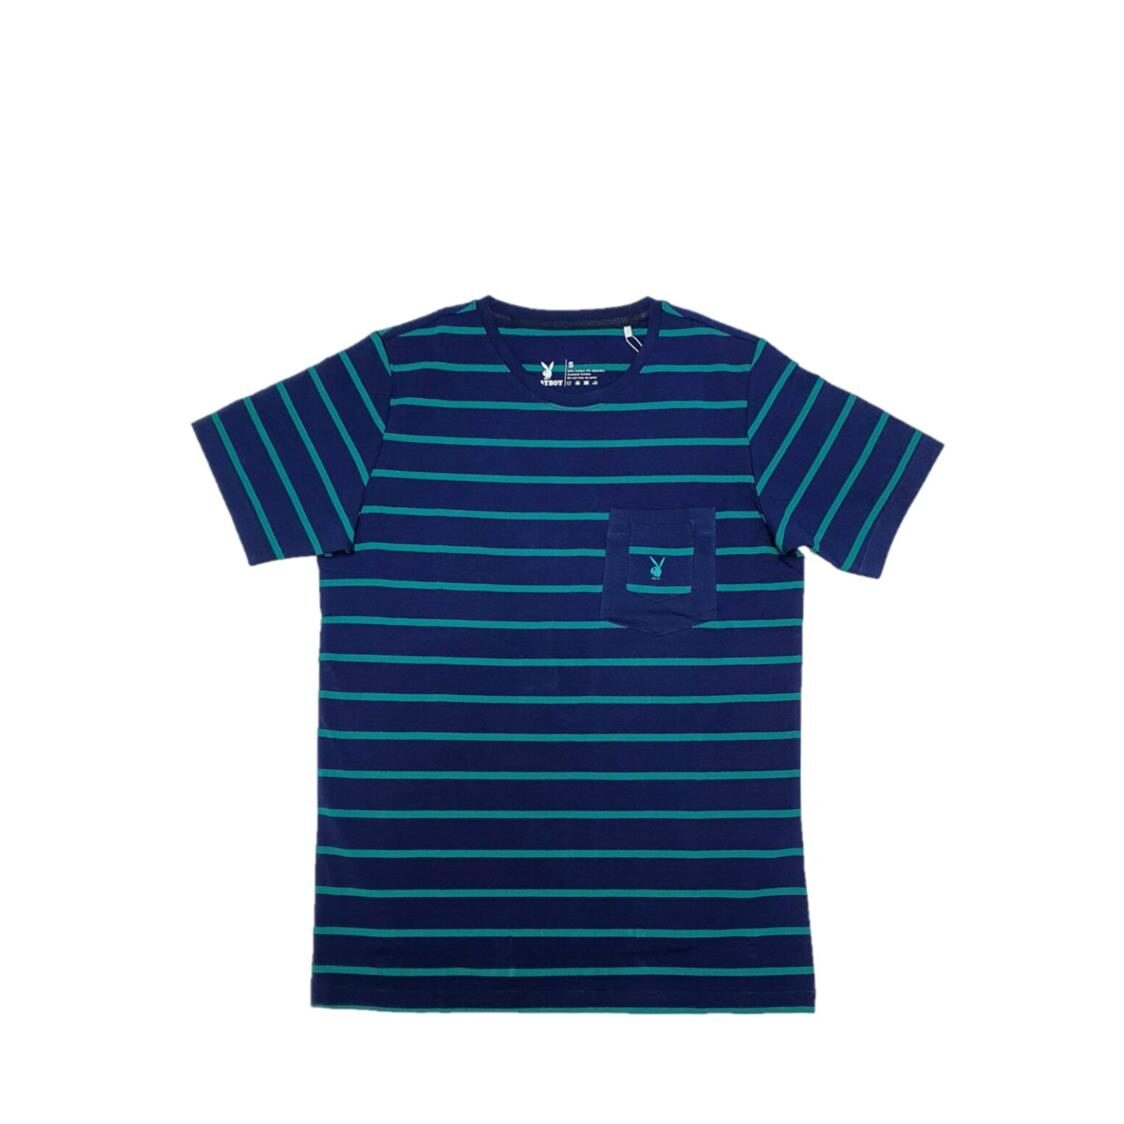 Playboy Round Neck Cotton Spandex Striped Tees with Pocket Blue